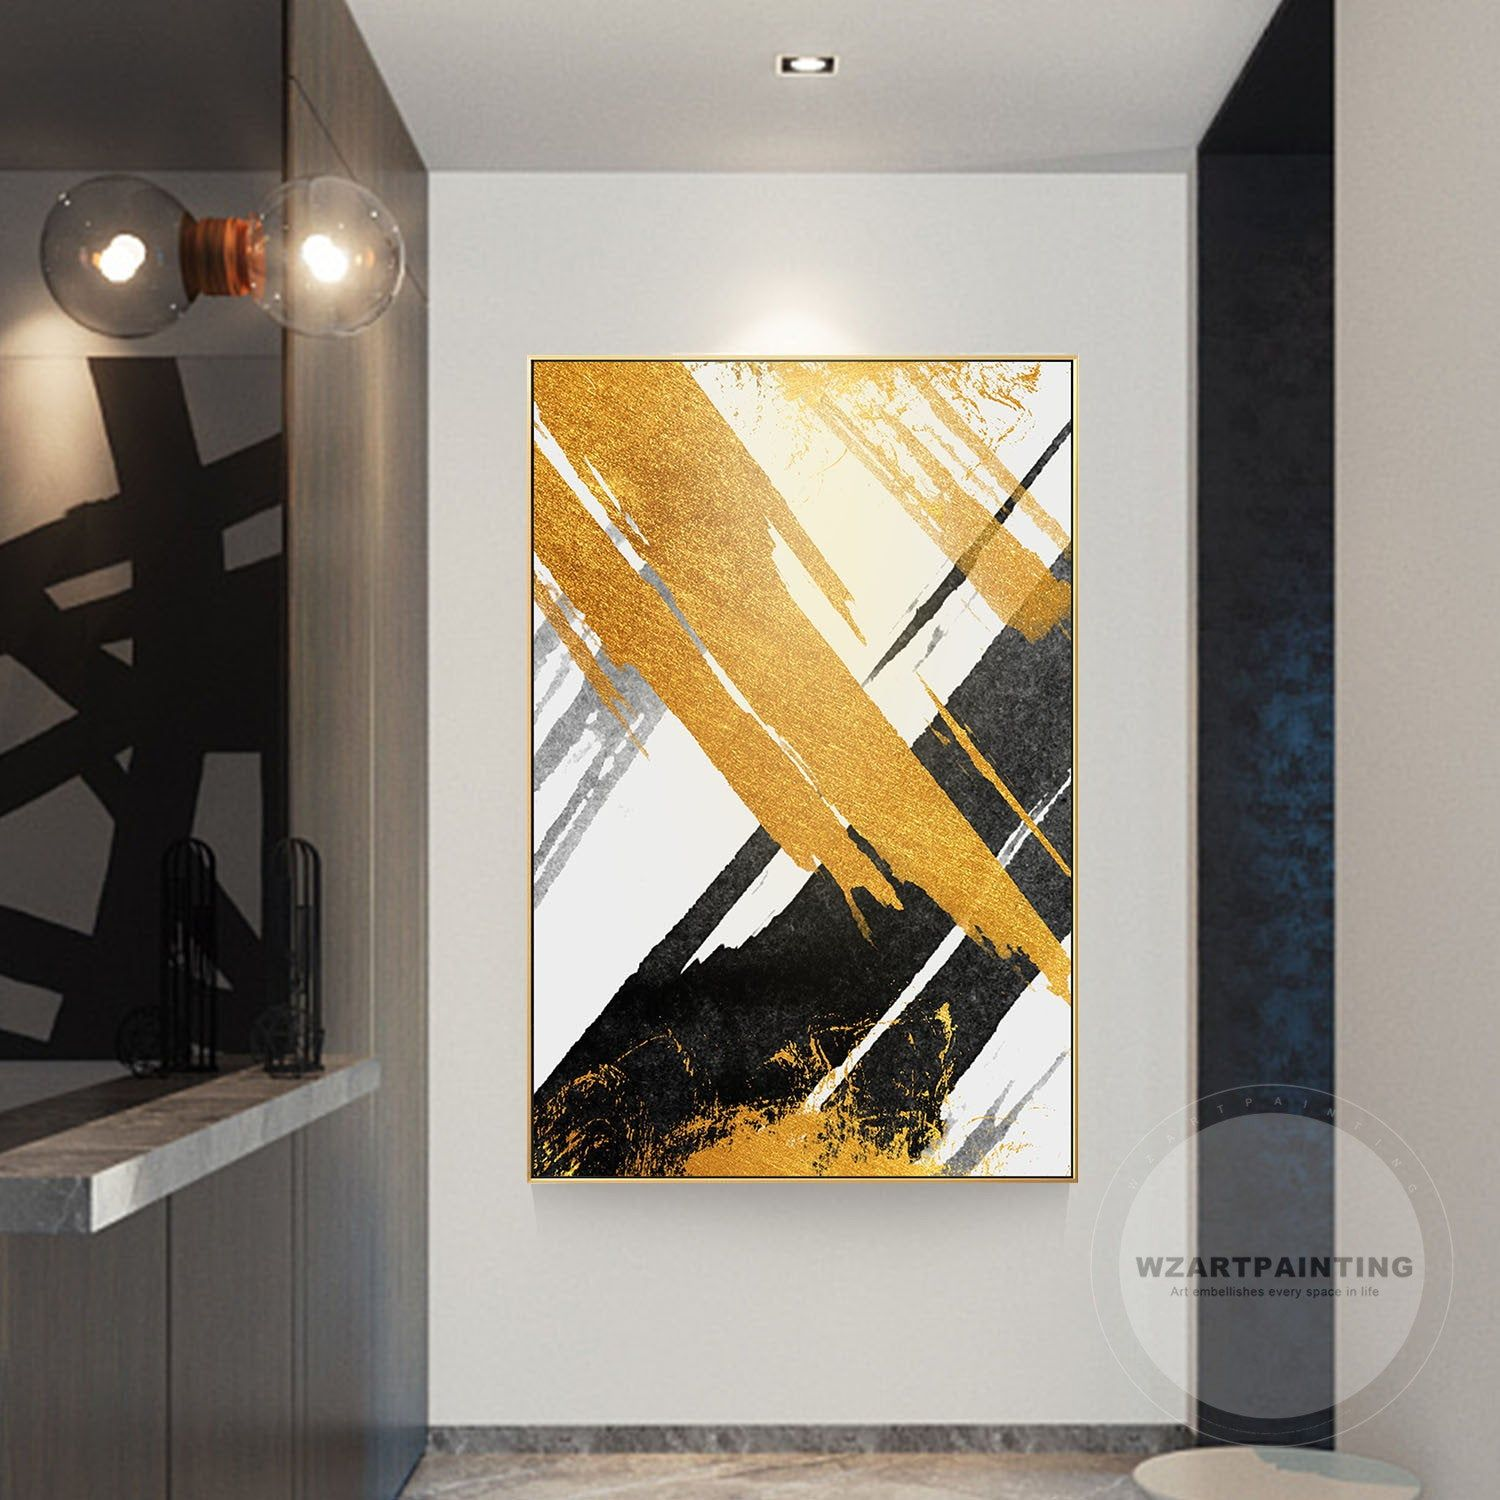 New Abstract Gold Prints Painting On Canvas Digital Prints Luxury Wall Art Picture Framed Ready To Hang For Li Wall Art Pictures Abstract Abstract Art Painting